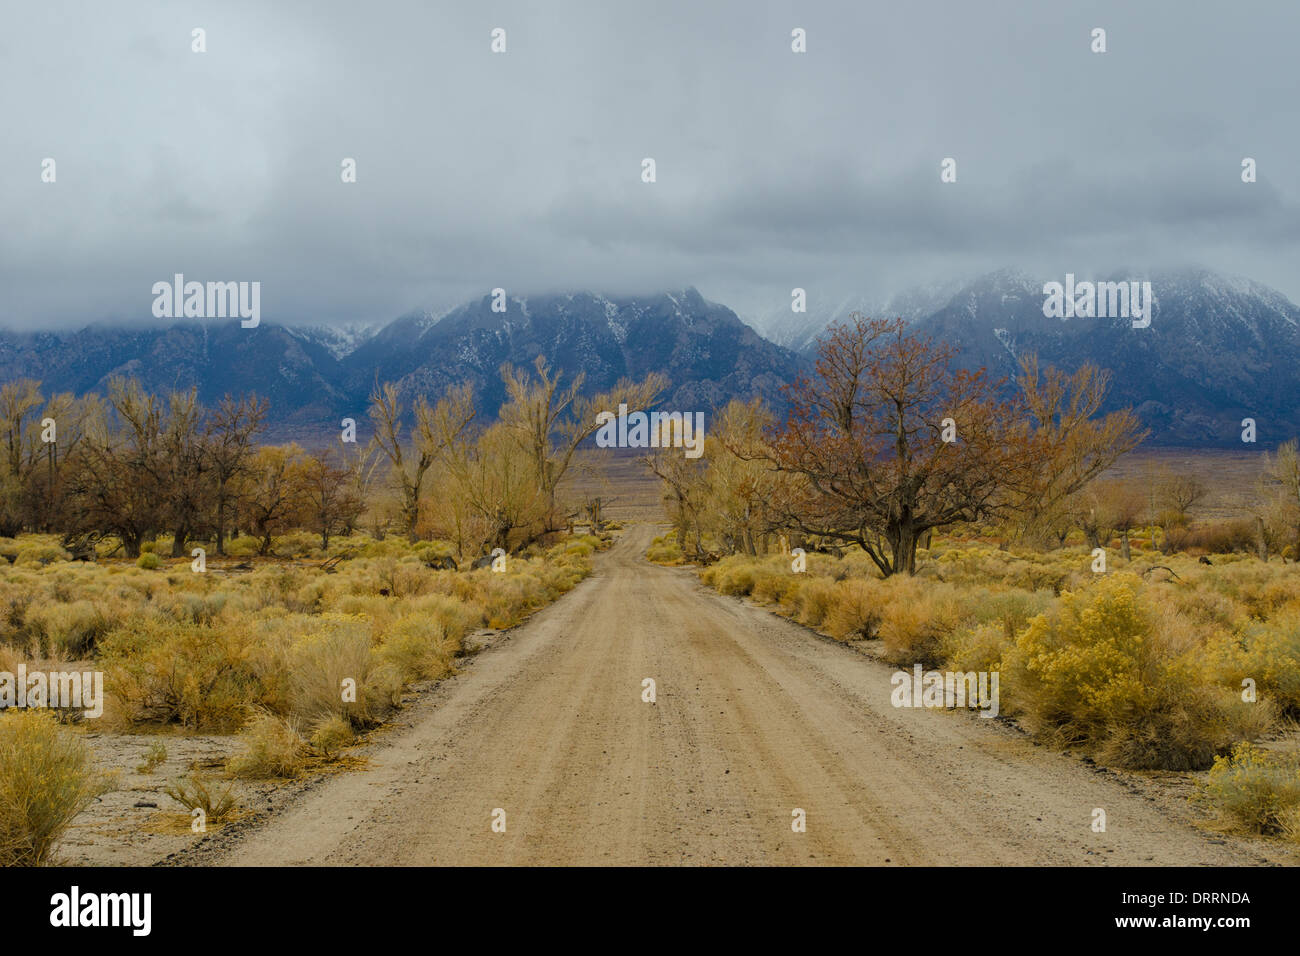 road in Manzanar a WW2 era prison camp that held Japanese Americans  California Sierras in background - Stock Image